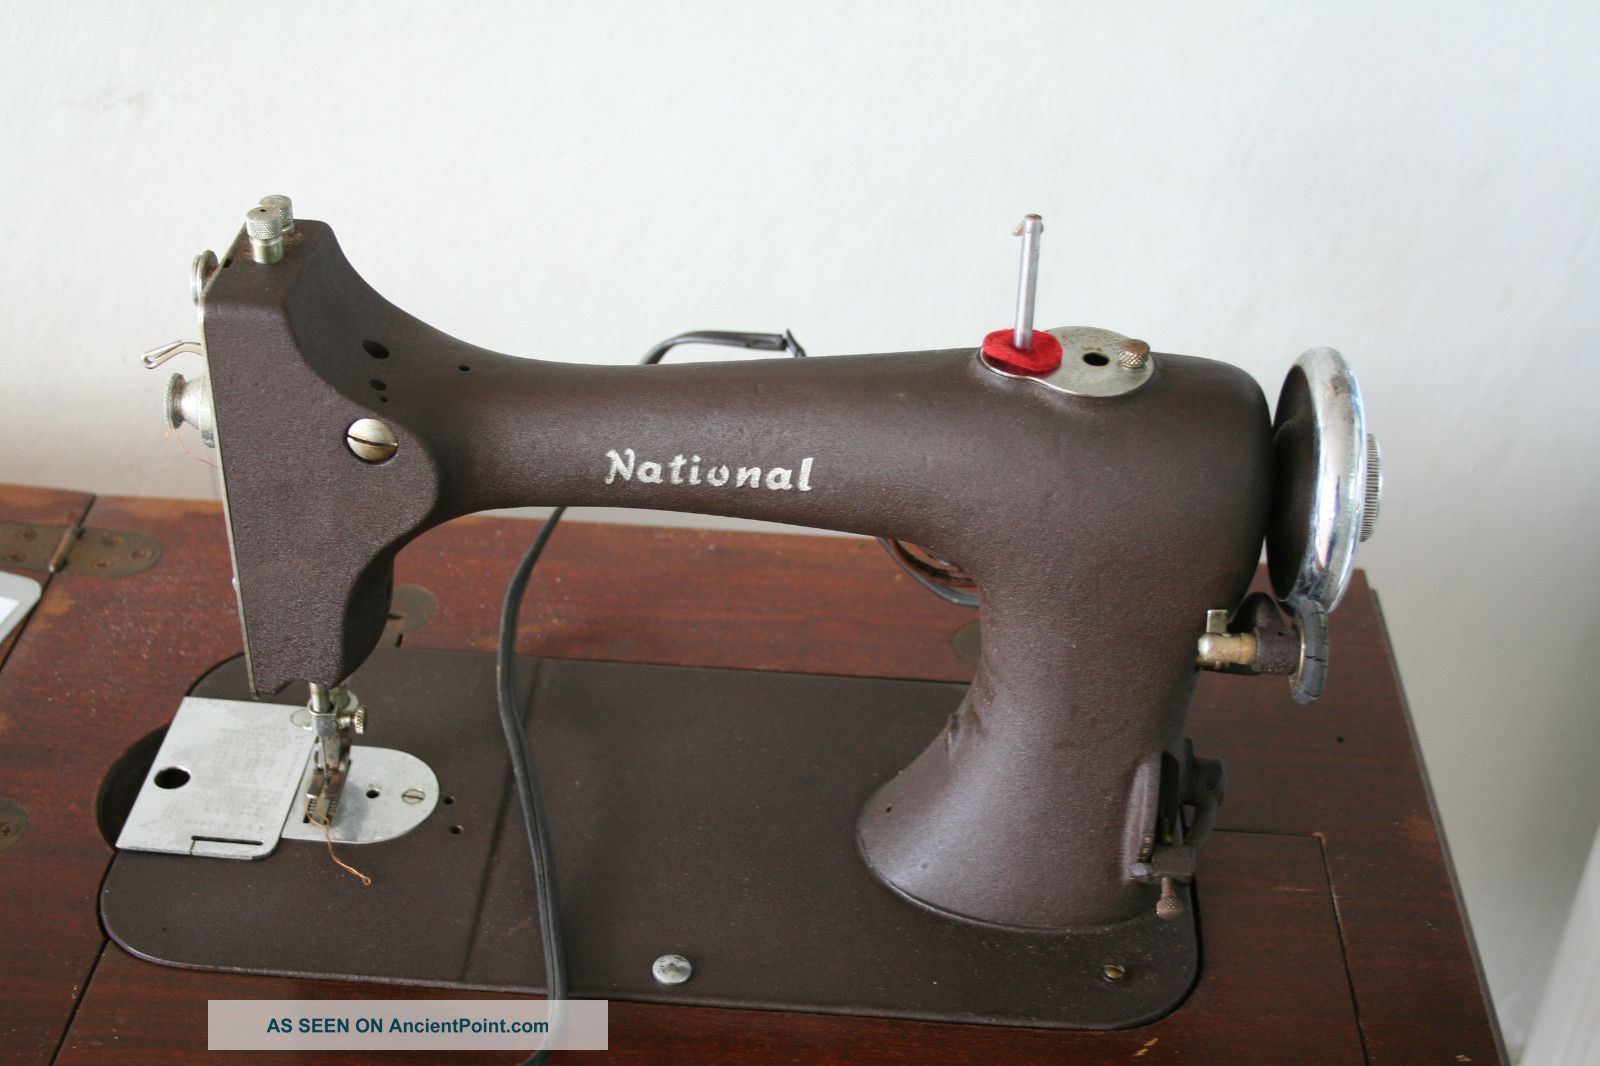 Antique National Sewing Machine / Sewing Vintage Sewing Machines photo